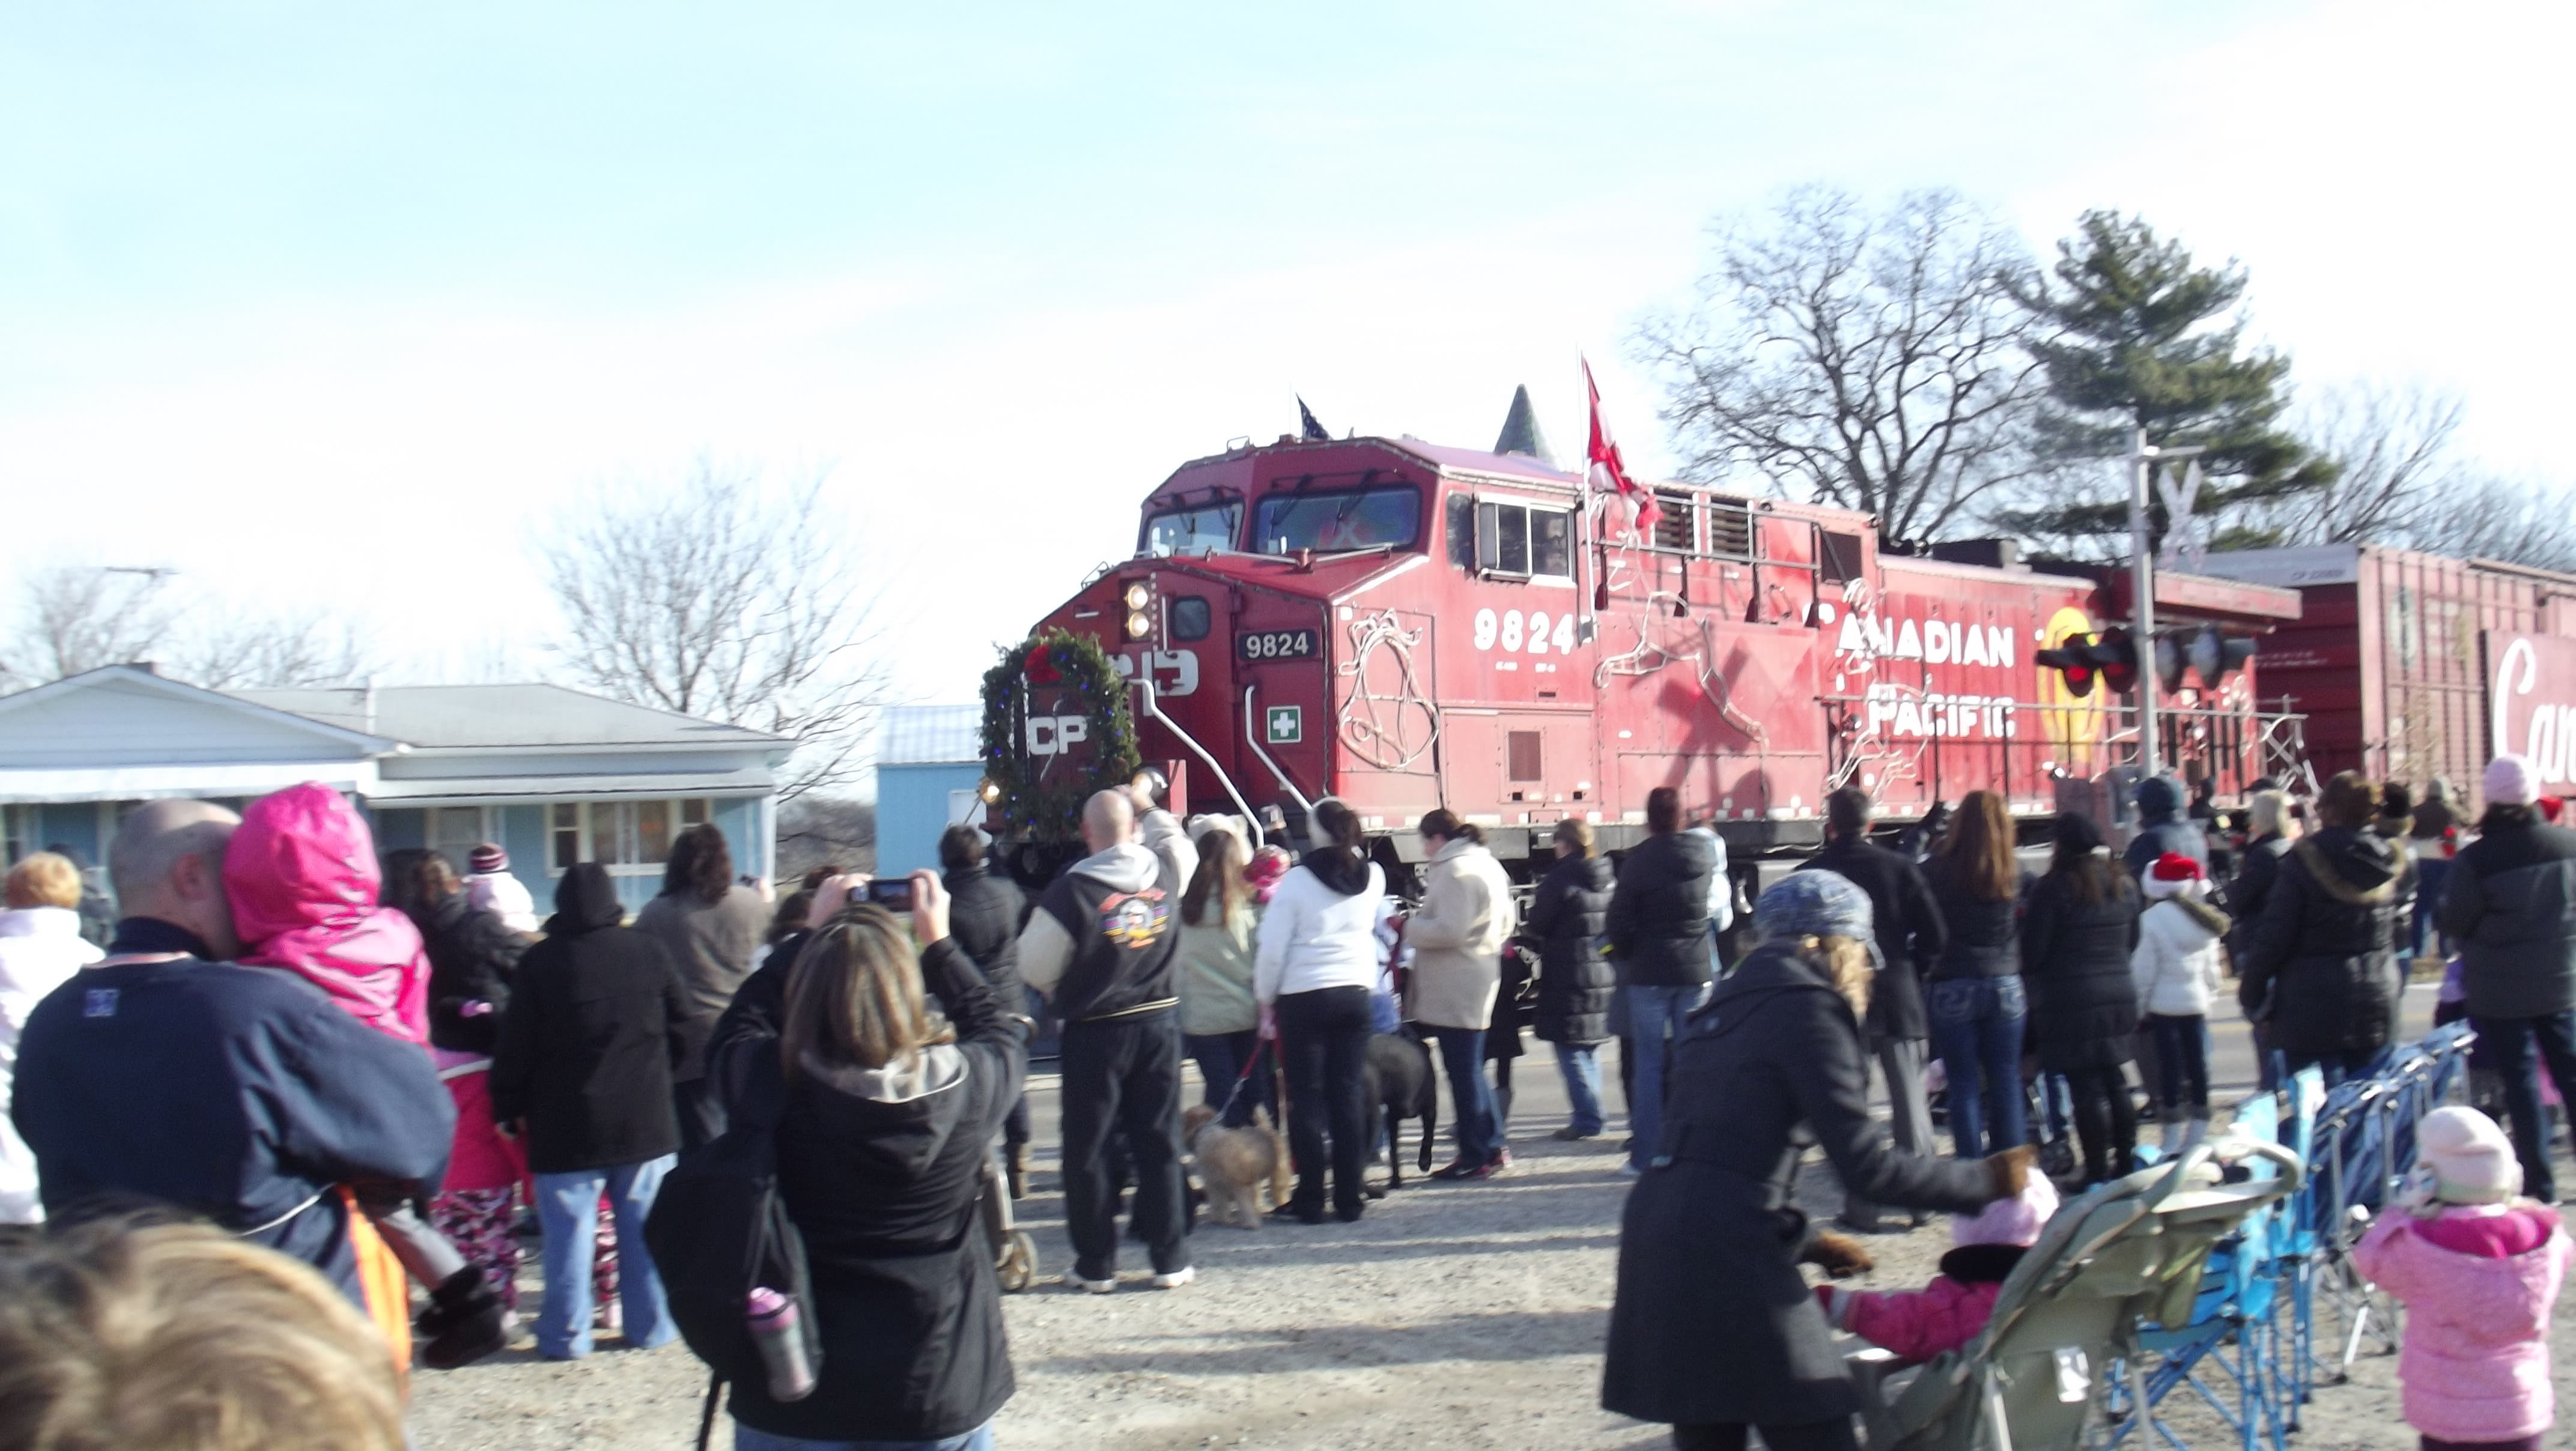 Canadian Pacific Holiday Train to stop in Pingree Grove on ...